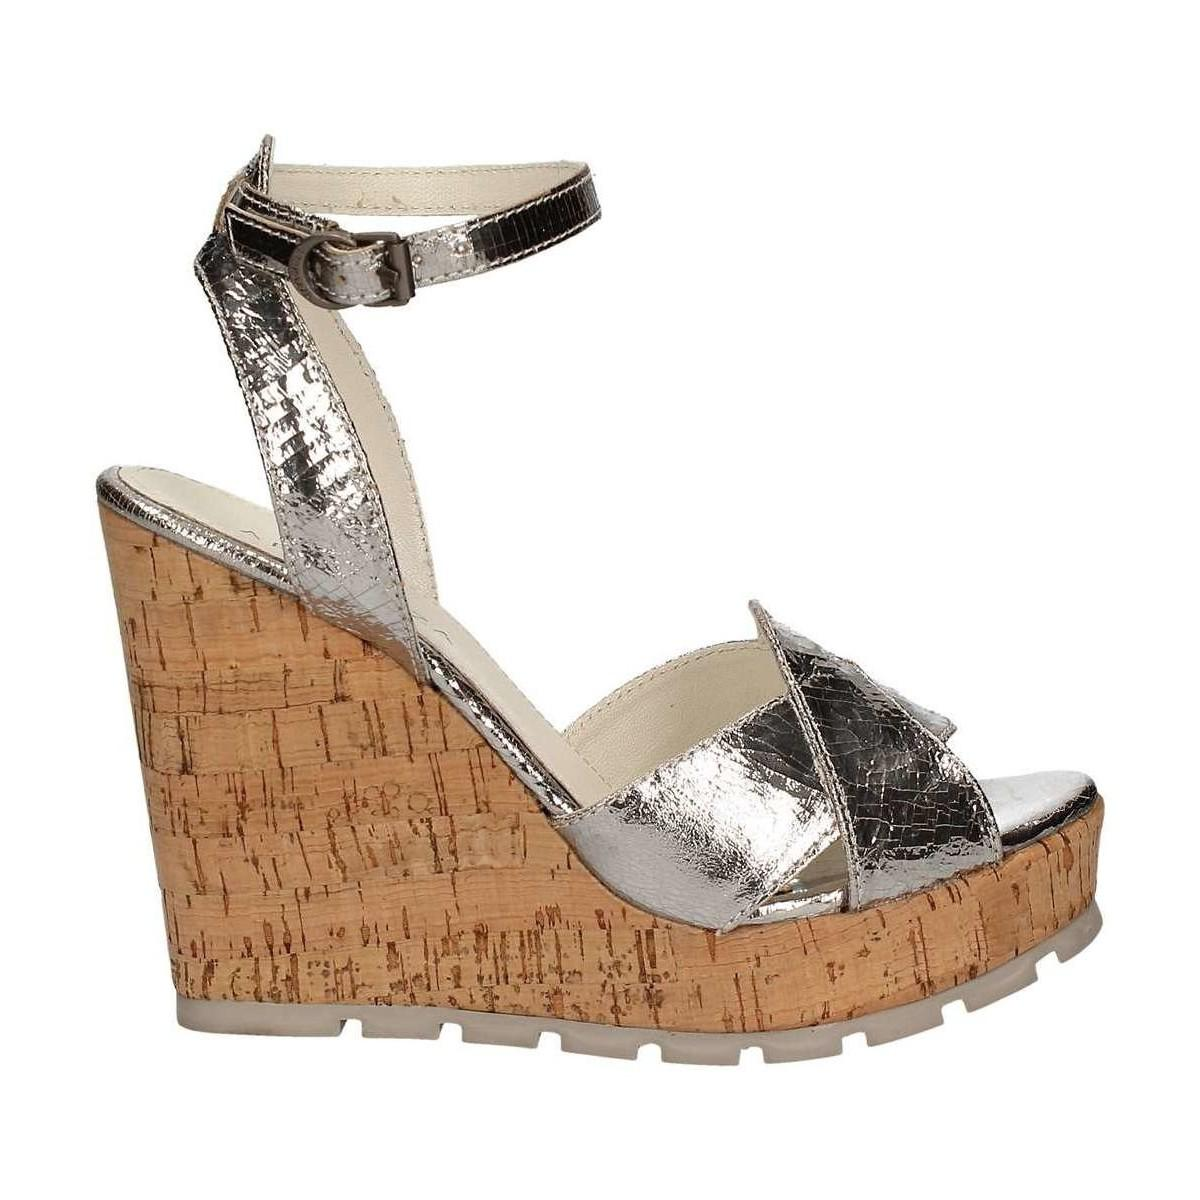 Apepazza LCK03 Wedge sandals Frauen Silver 40 LWsN7Q